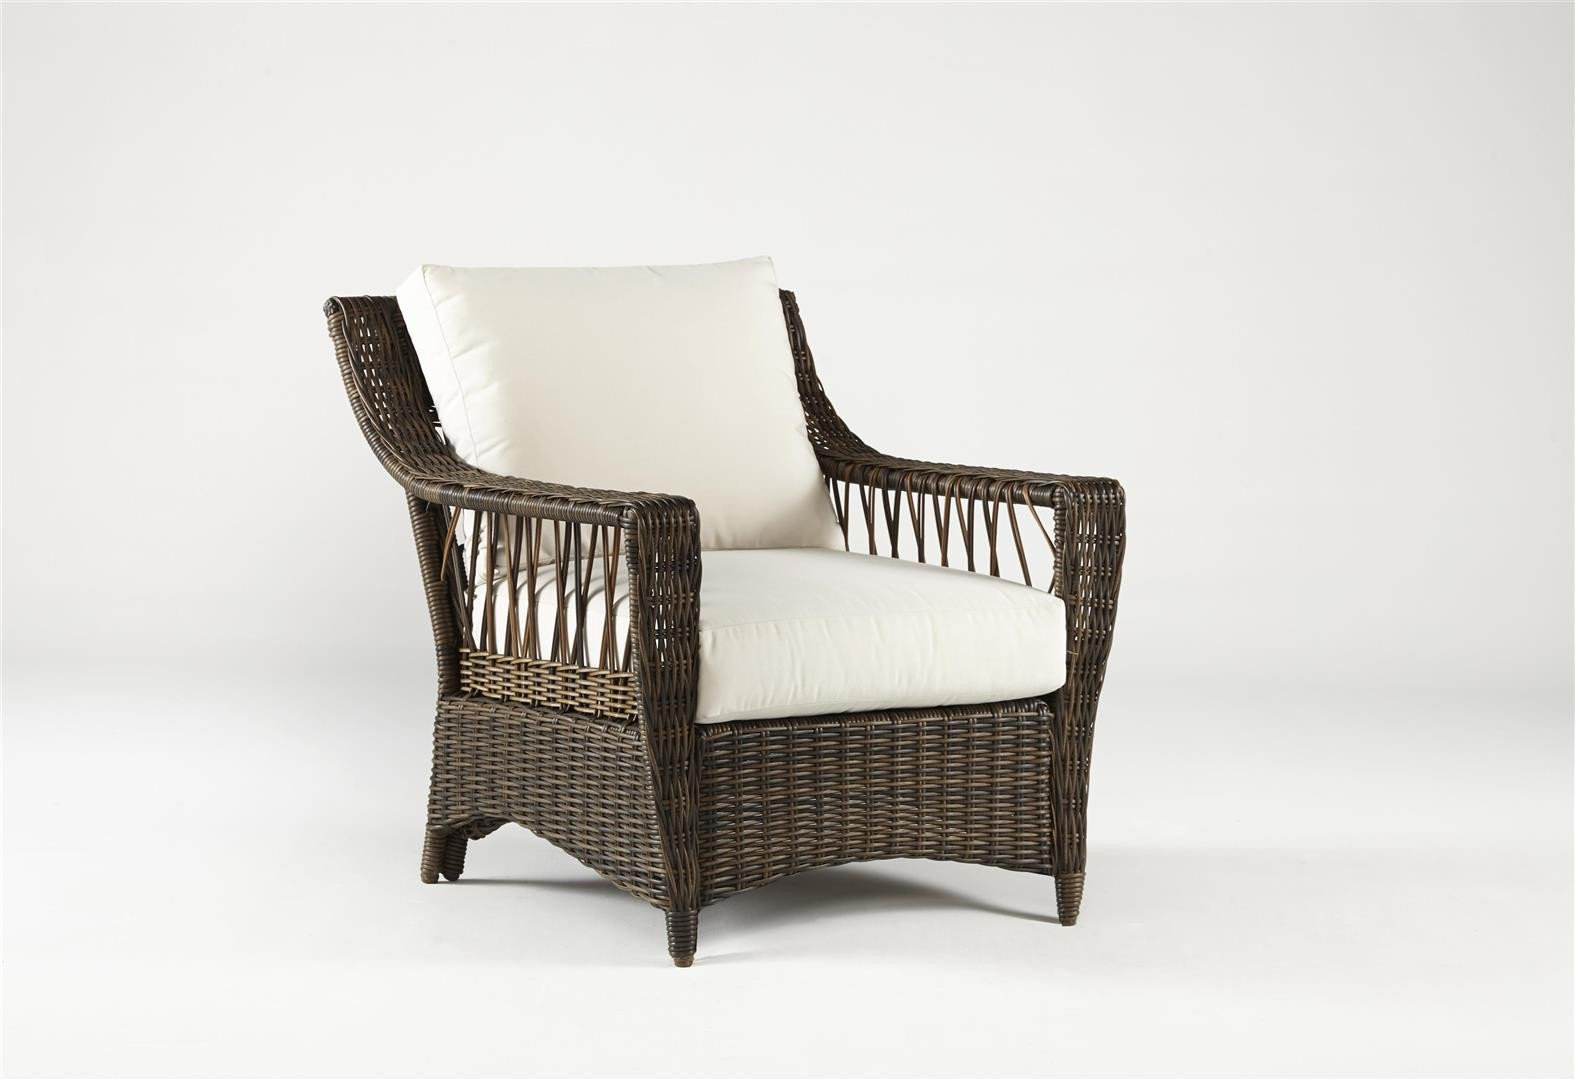 South Sea Rattan South Sea Rattan St. John Resin Wicker Arm Chair Chair - Rattan Imports